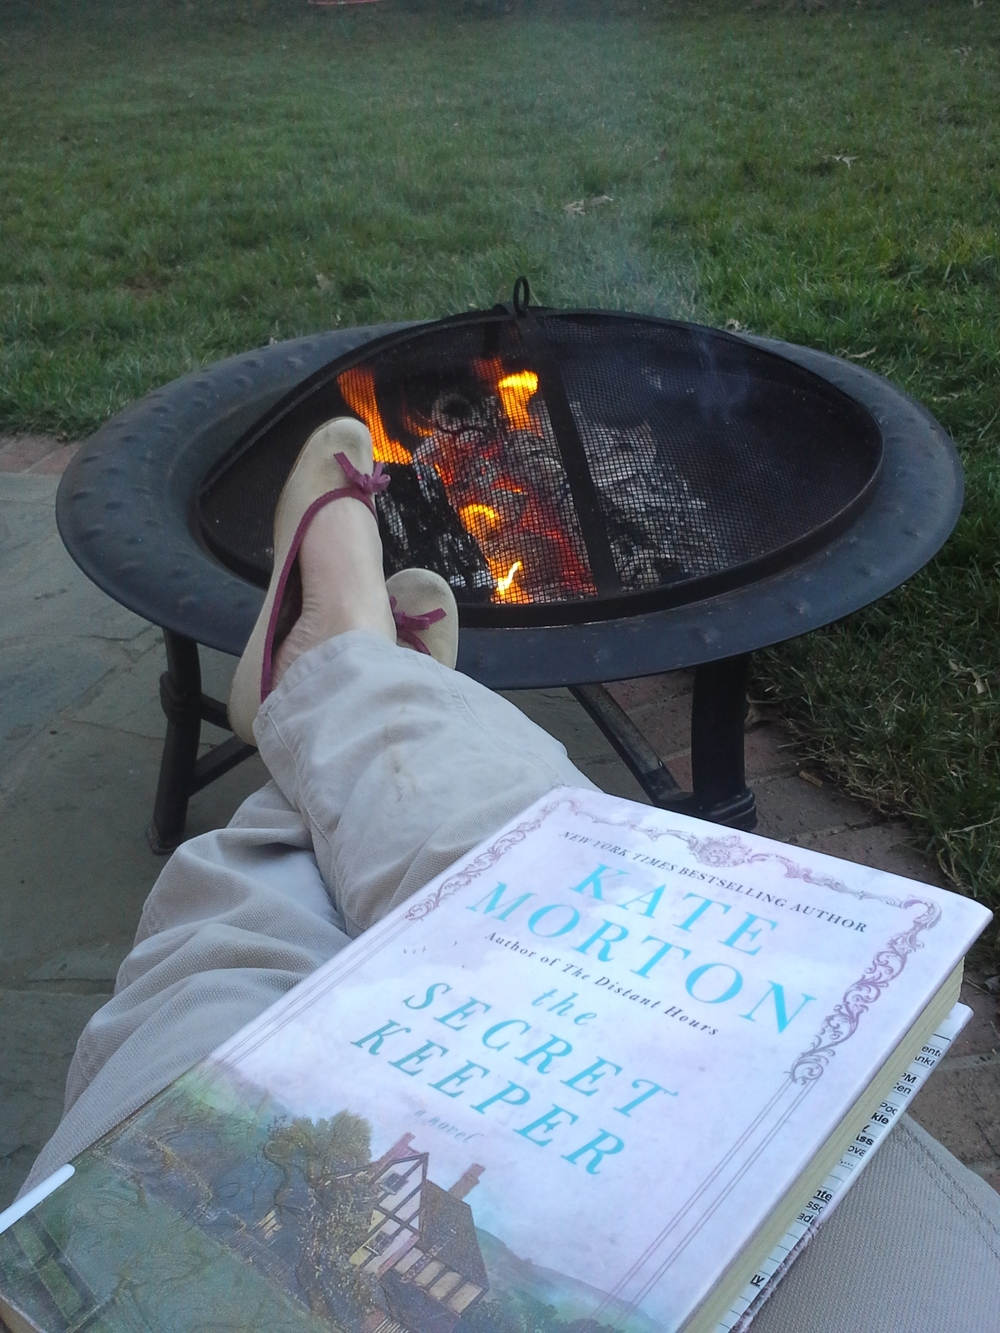 Love to be reading outside again!